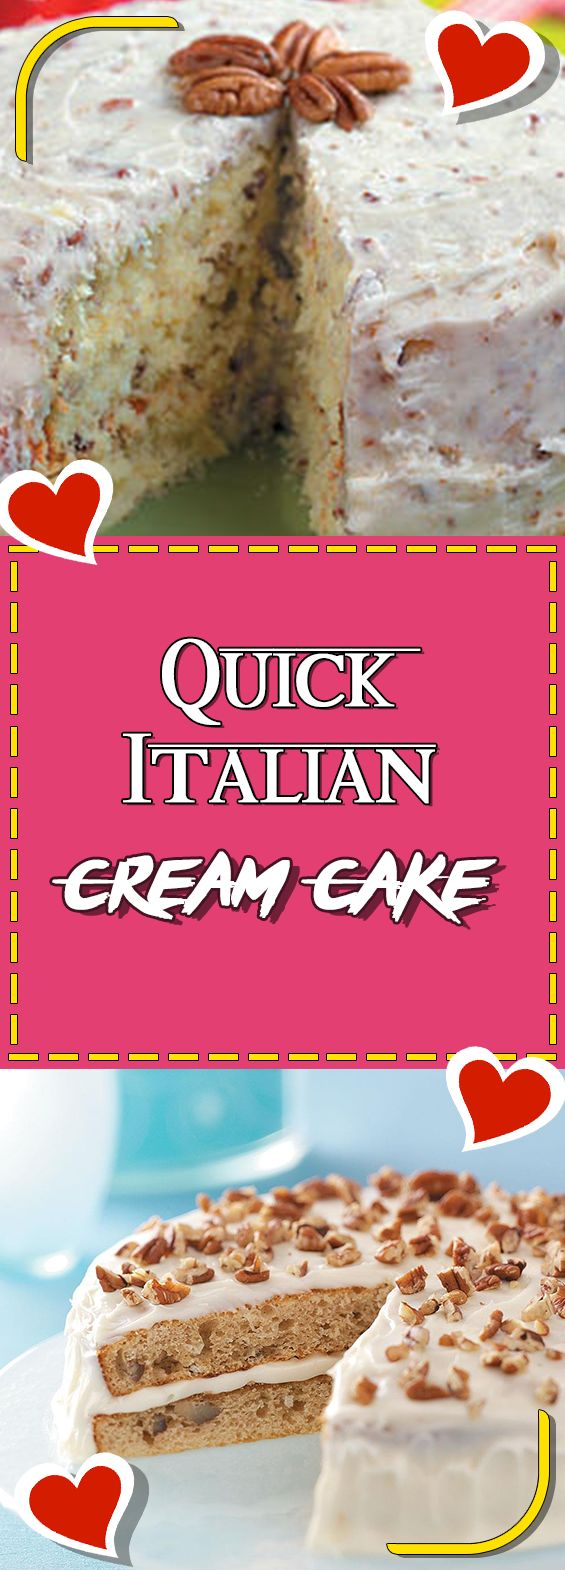 2551 best Cake images on Pinterest   Biscuit, Dessert recipes and Drinks